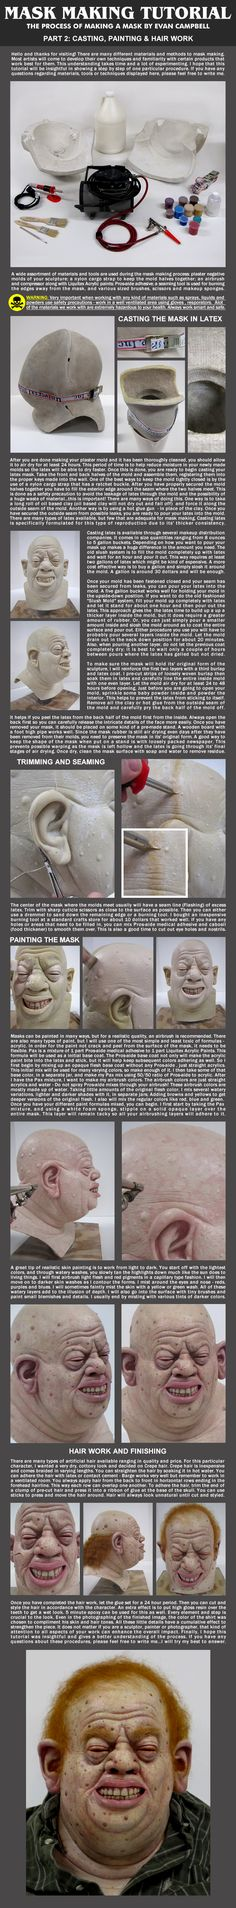 Mask Making Tutorial: Part 2 by *EvanCampbell on deviantART